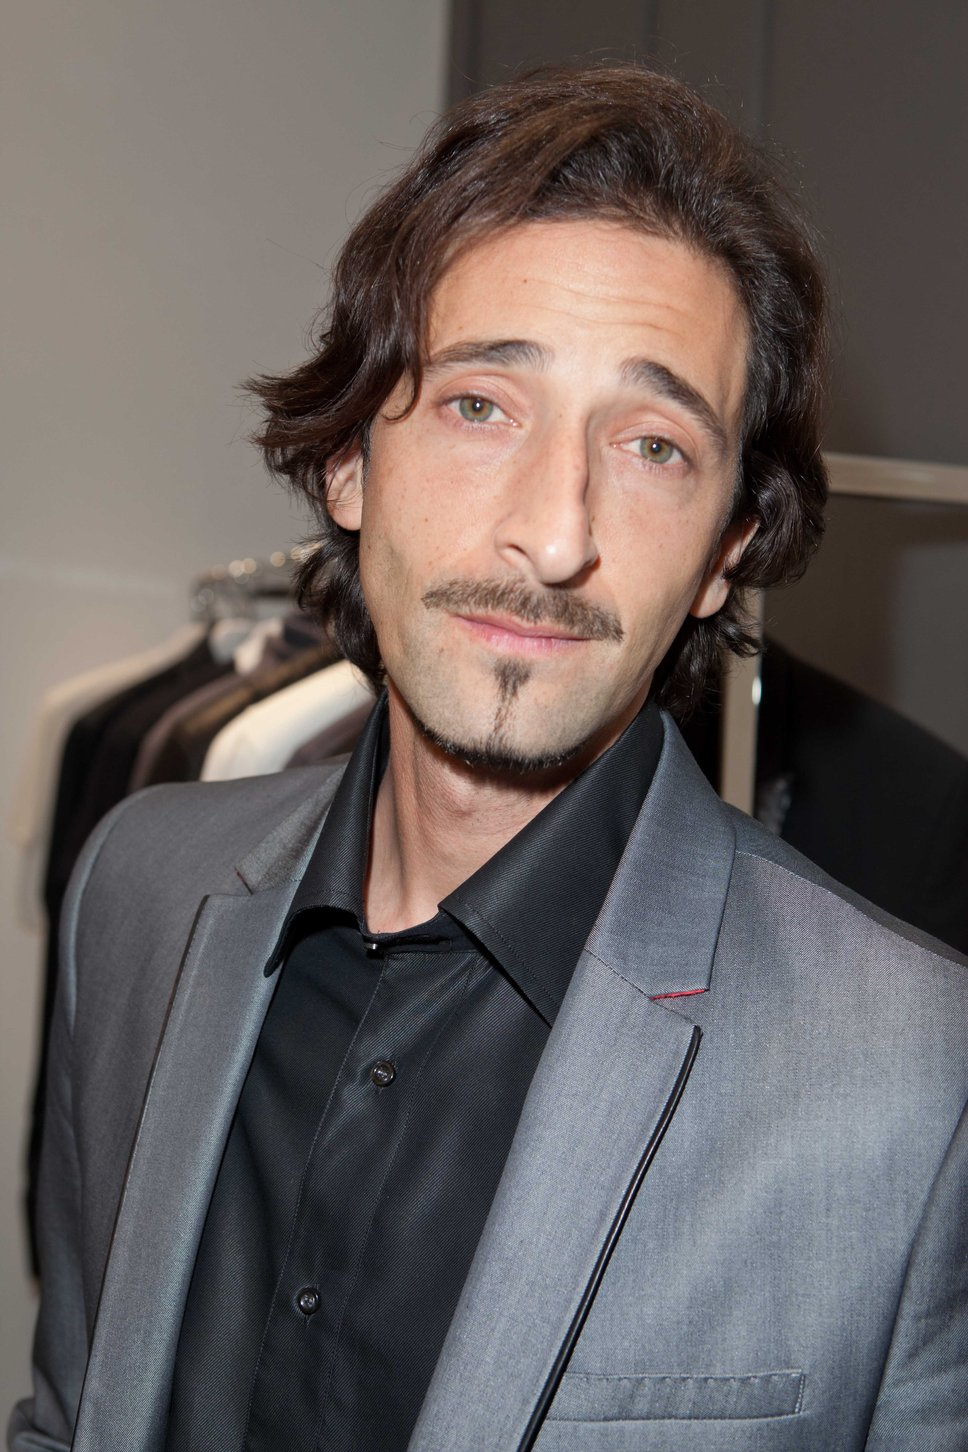 Adrien Brody HairStyle (Men HairStyles) - Men Hair Styles Collection